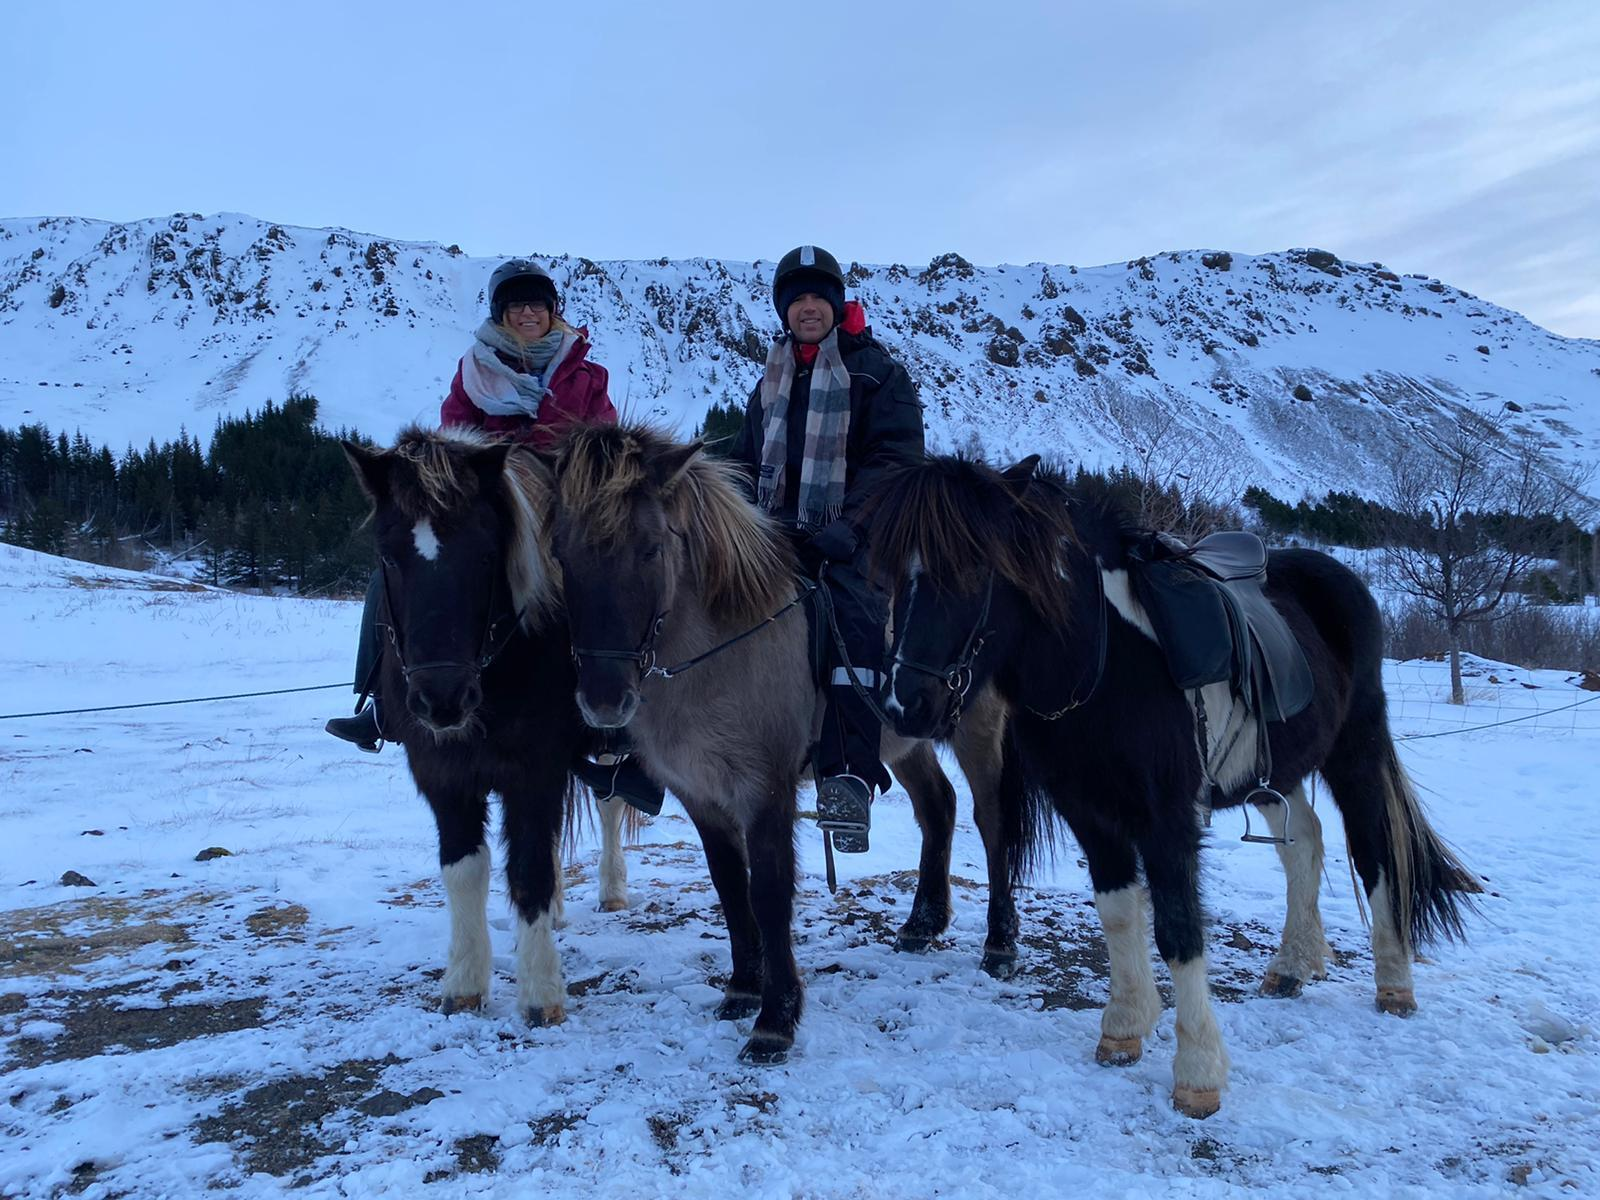 viking horses iceland tour and hot springs